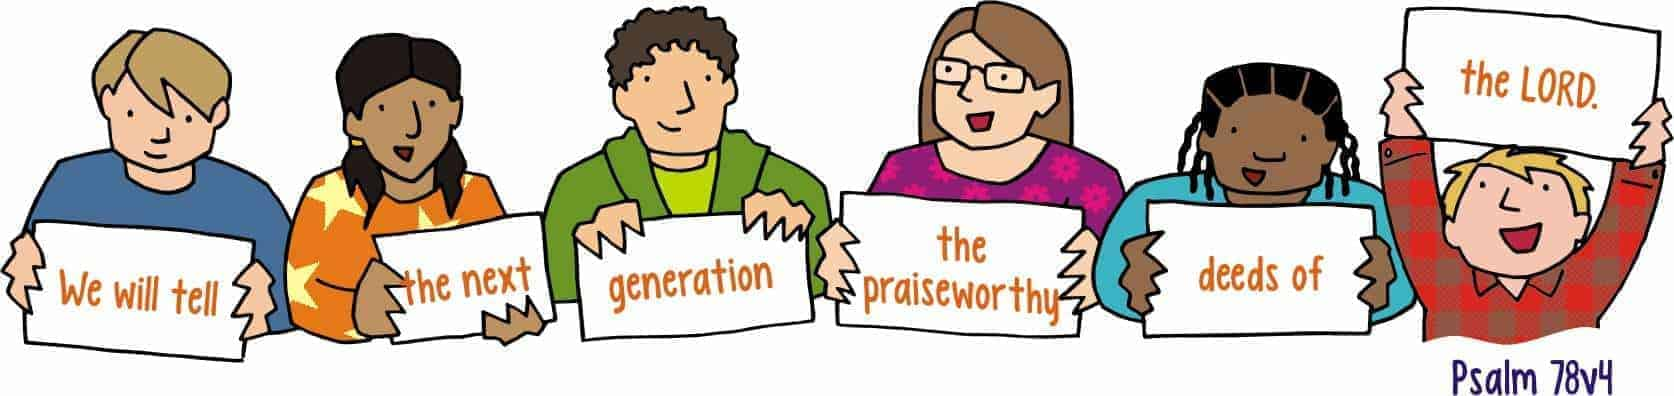 We will tell the next generation the praiseworthy deeds of the Lord